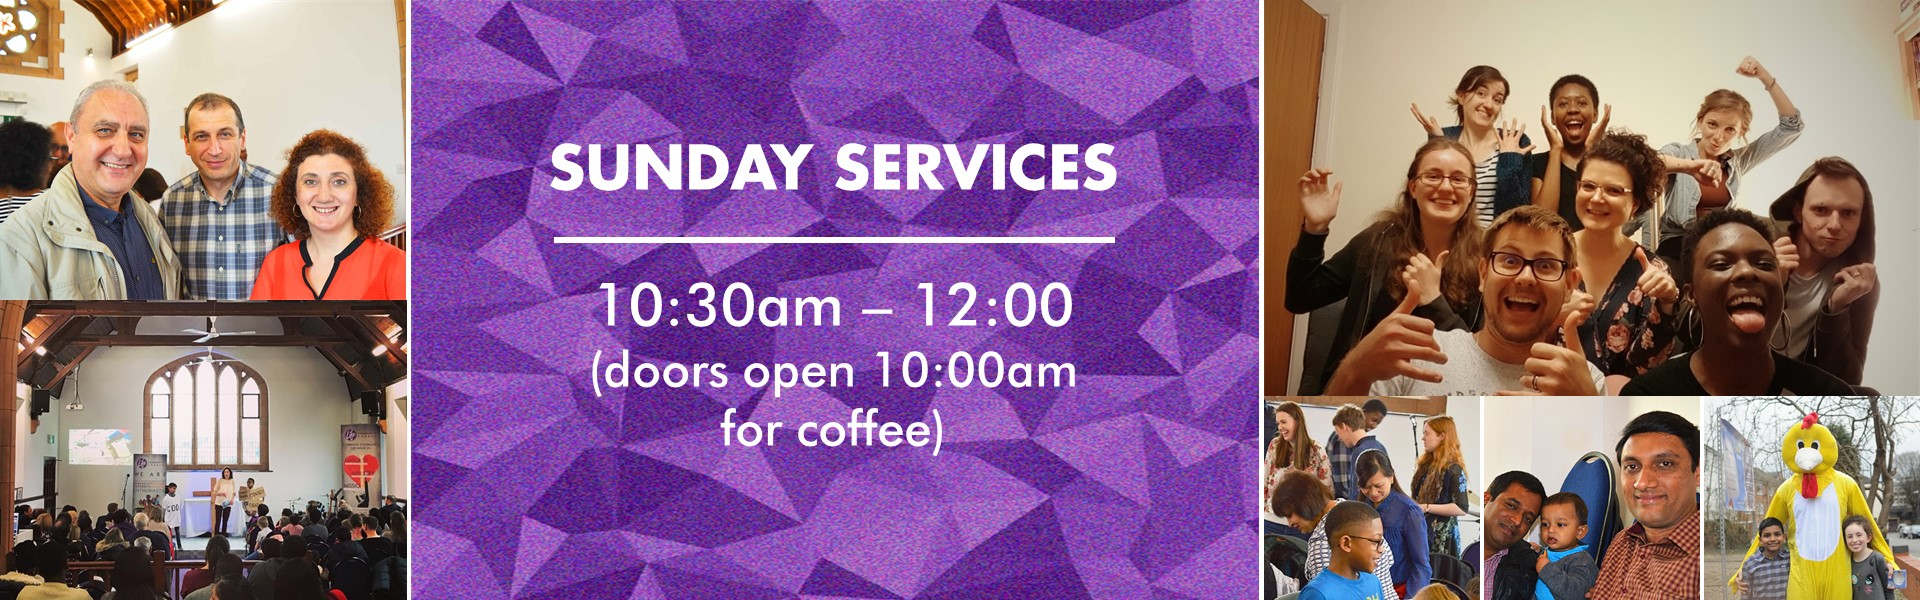 Sunday Services/Plan A Visit